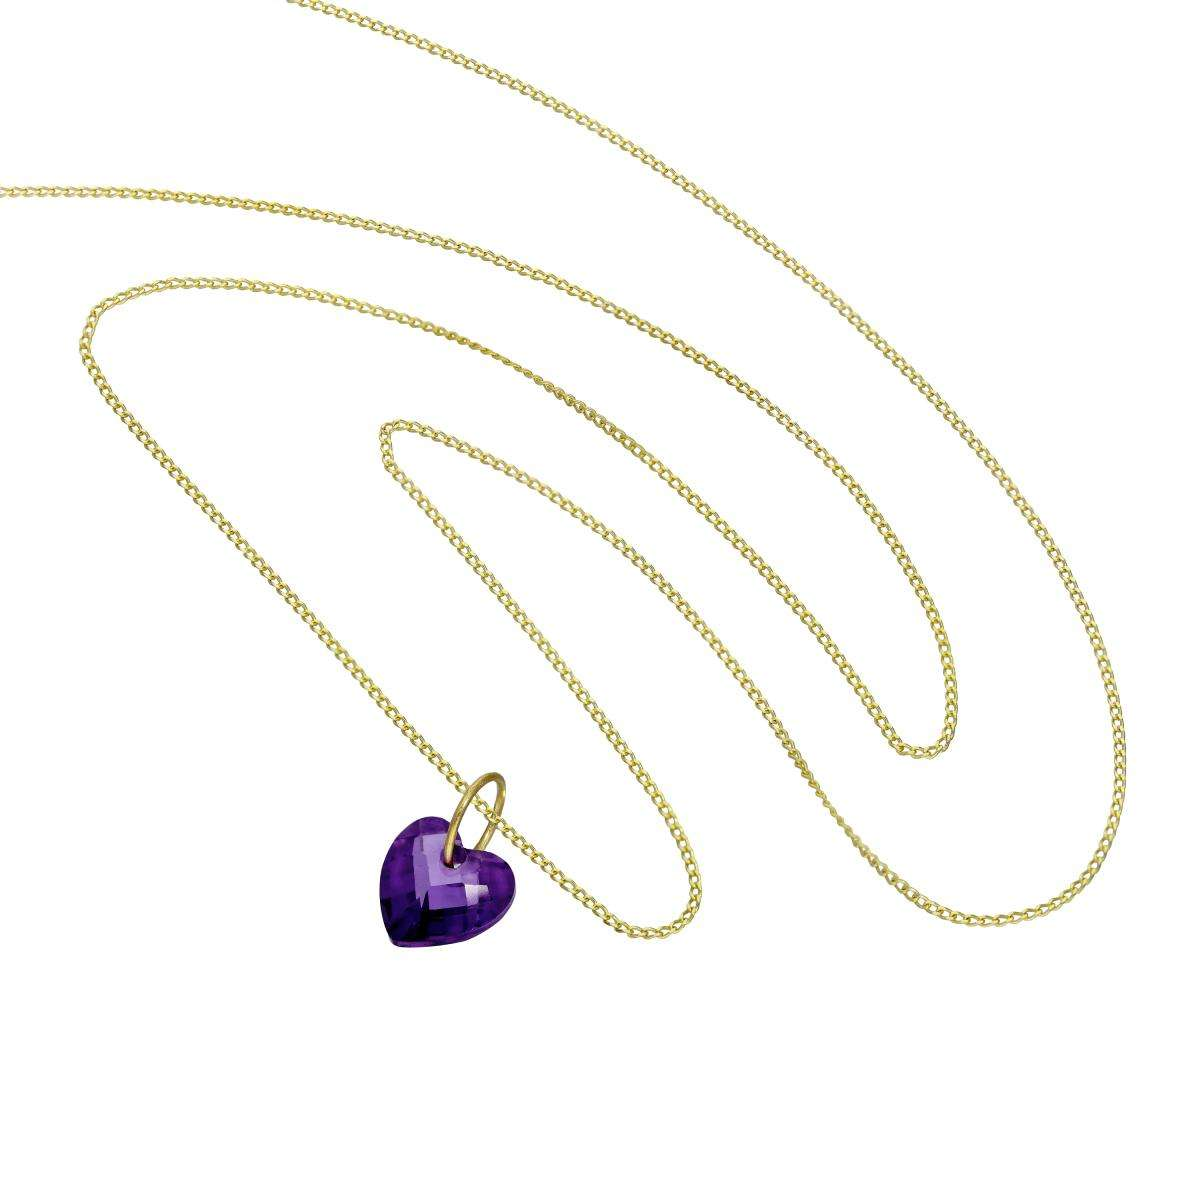 Alterative image for 9ct Gold & Purple CZ Crystal Heart Pendant Necklace 16 - 20 Inches